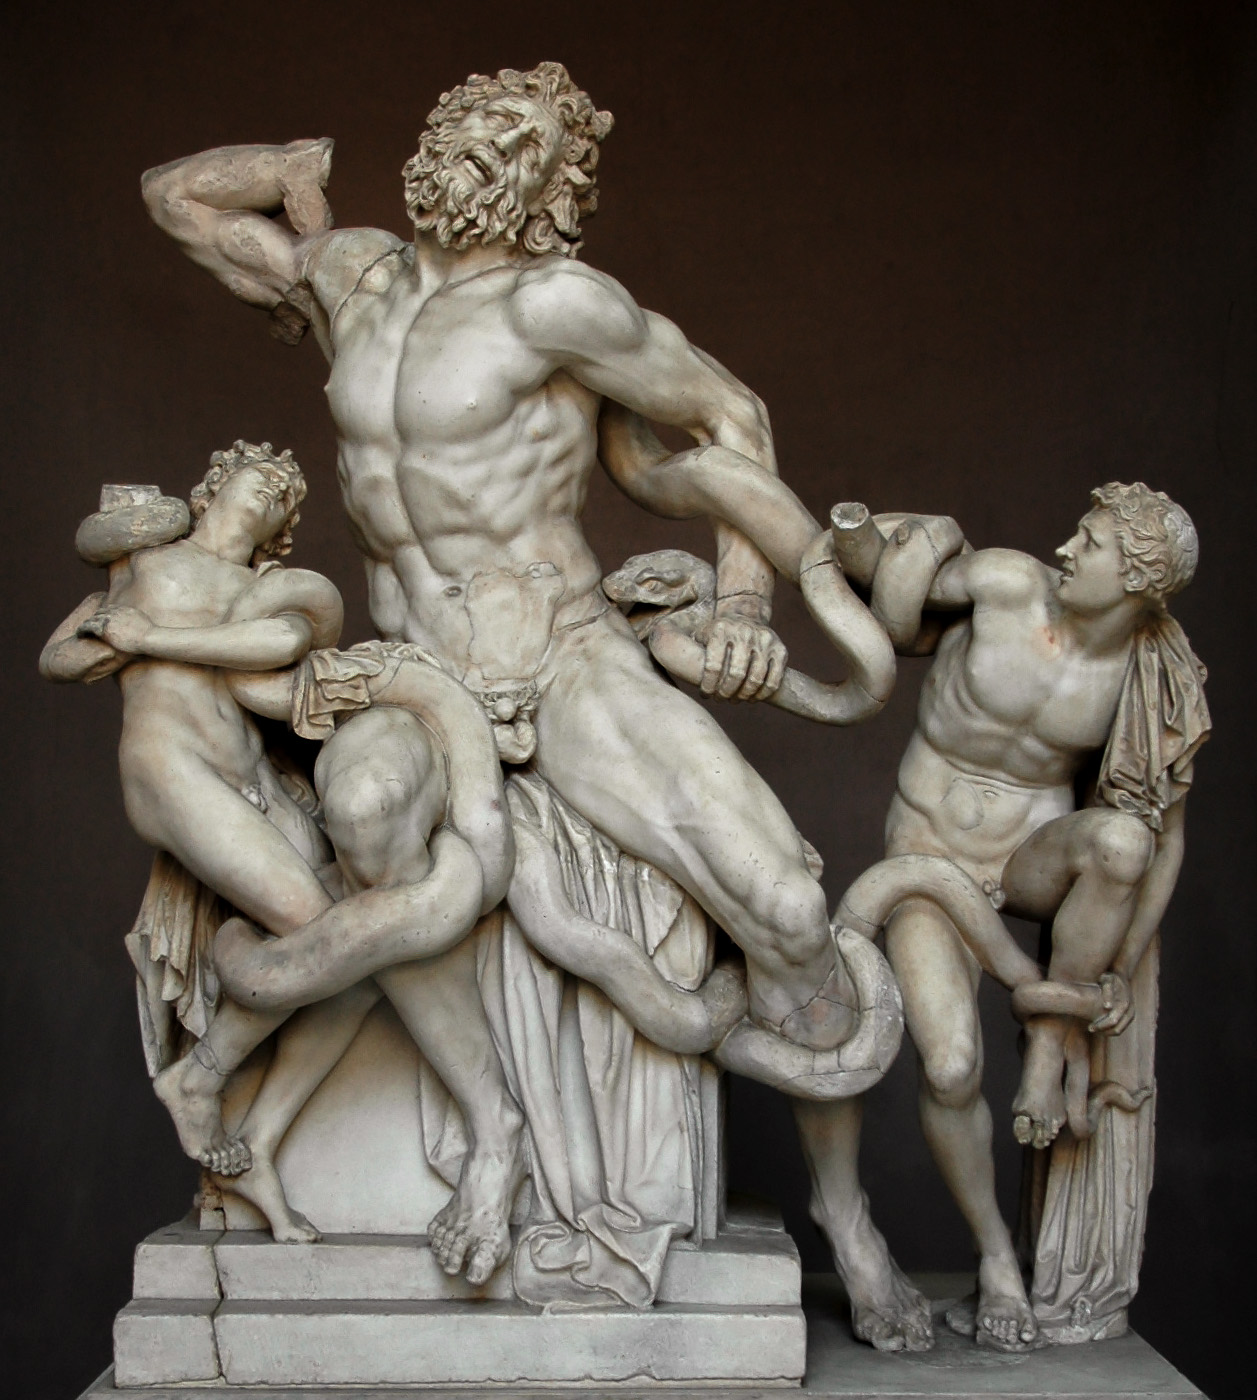 The Laocoon group. Marble. 1st century CE. Inv. No. 1059. Rome, Vatican Museums, Pius-Clementine Museum, Octagonal Court, Laocoon Cabinet, 2